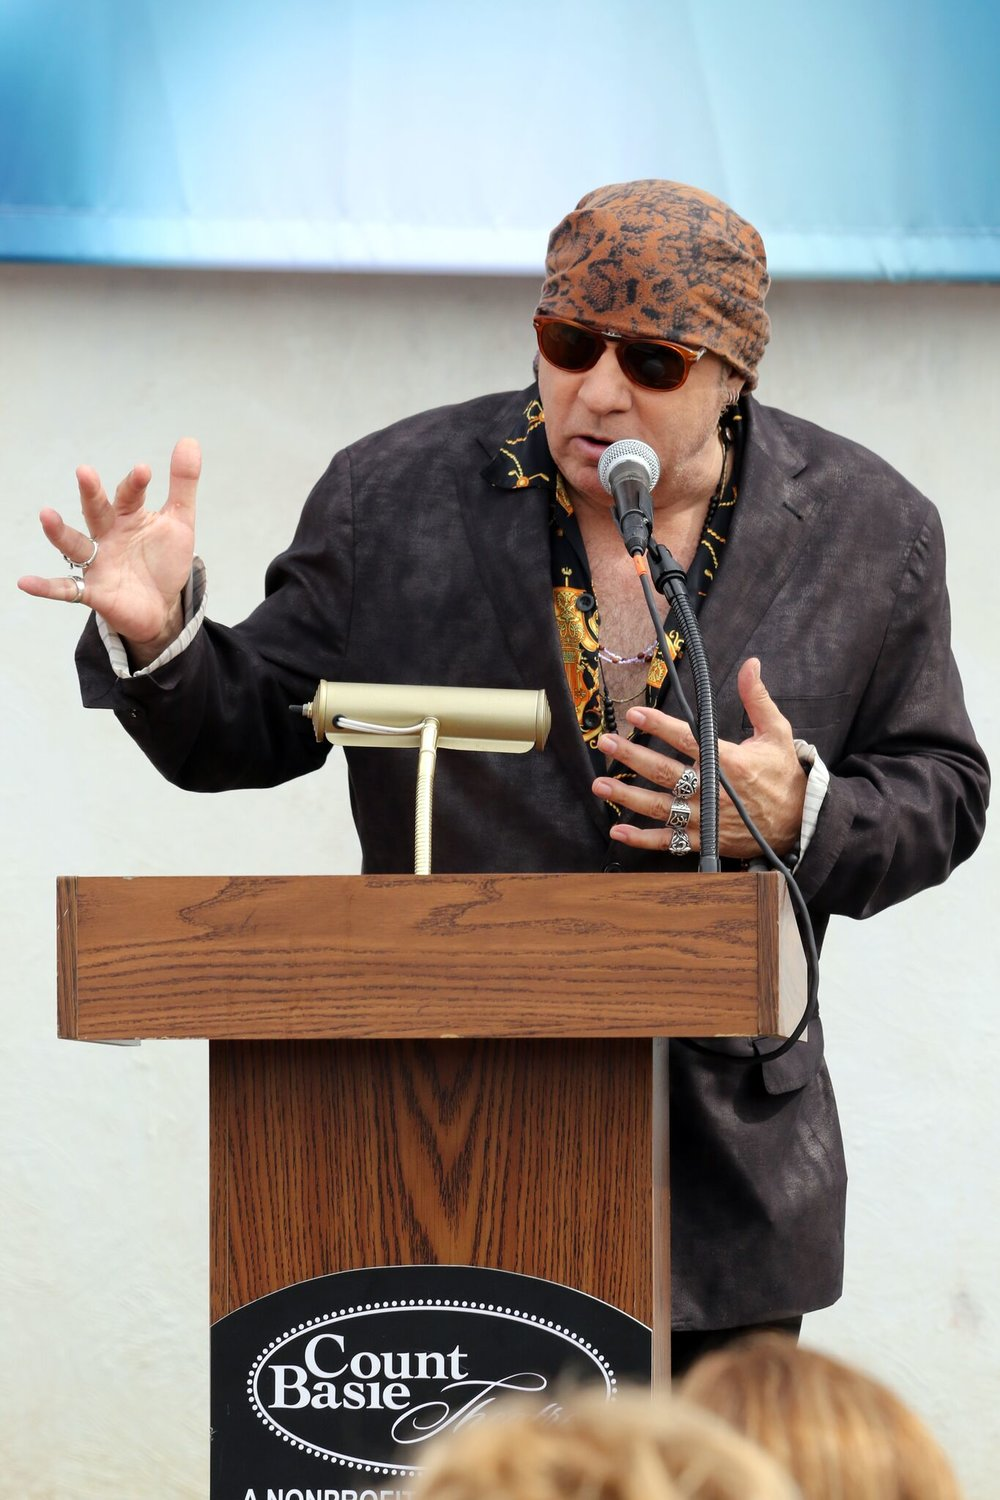 Capital Campaign Honorary Co-Chair Steven Van Zandt